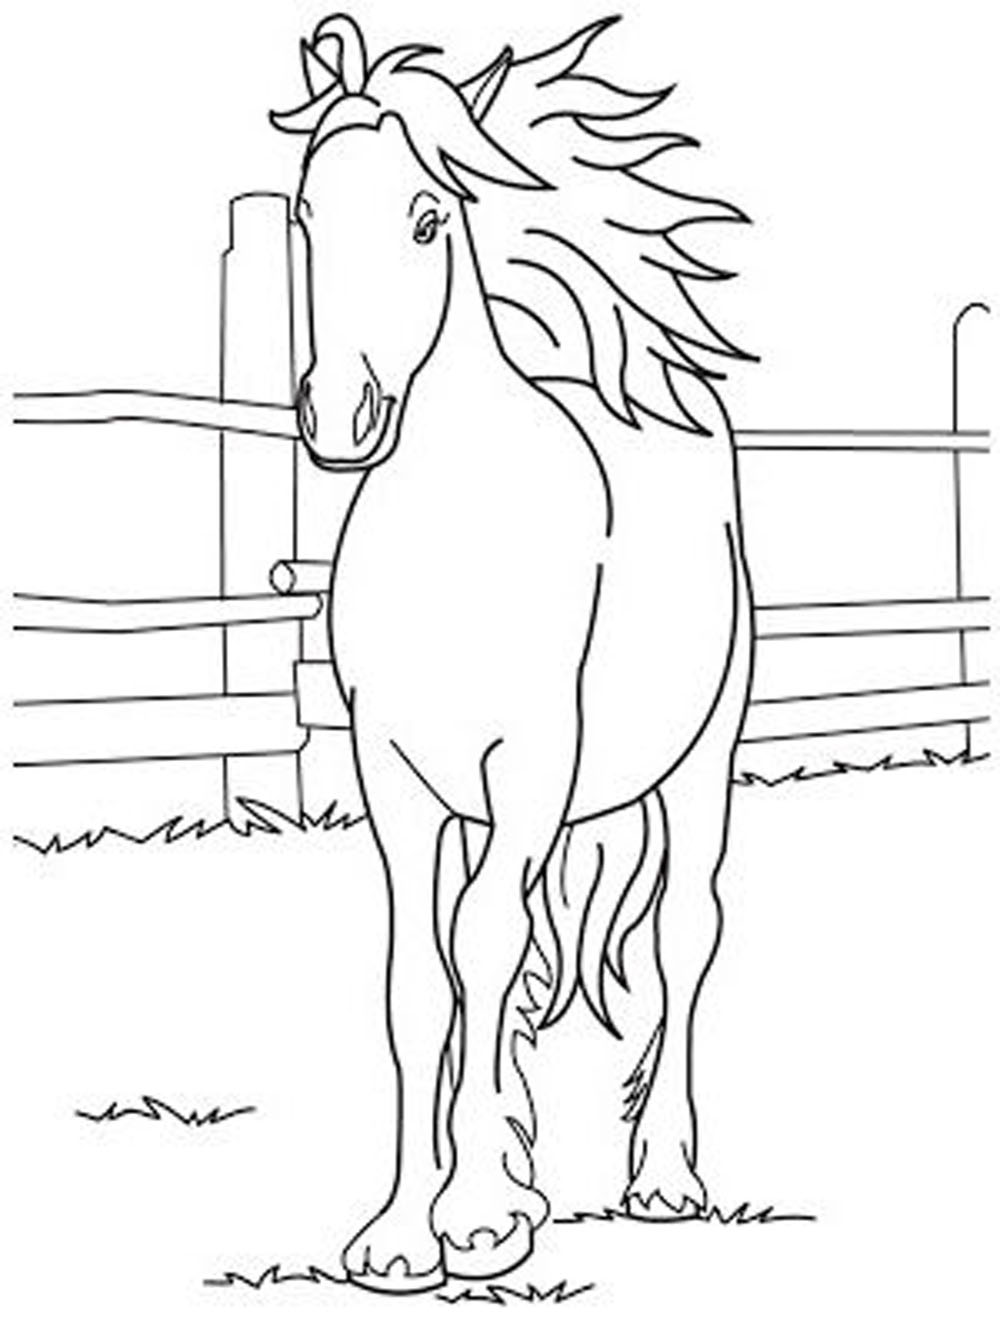 coloring sheet horse cute horse coloring pages at getcoloringscom free coloring sheet horse